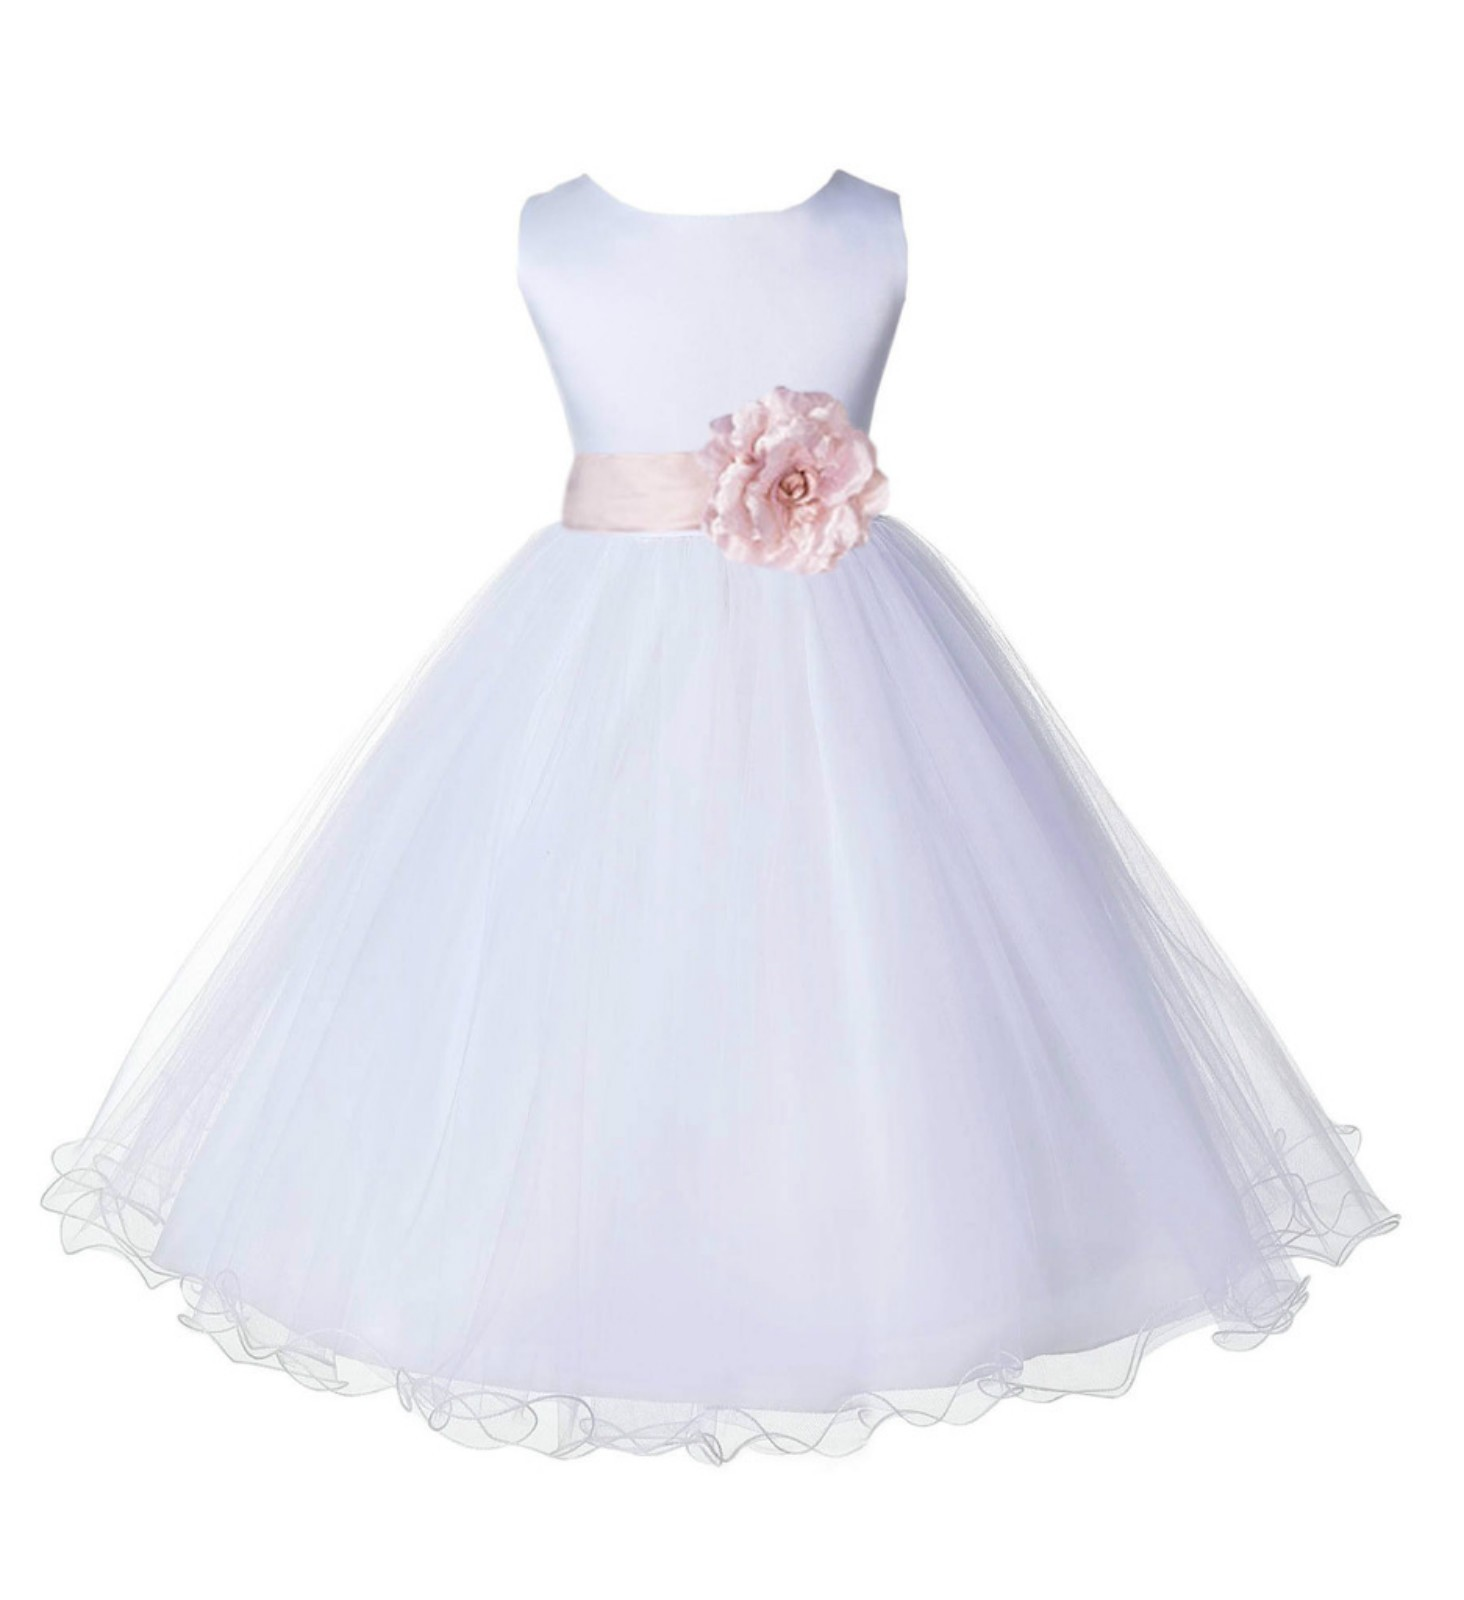 White/Blush Pink Tulle Rattail Edge Flower Girl Dress Wedding Bridal 829S